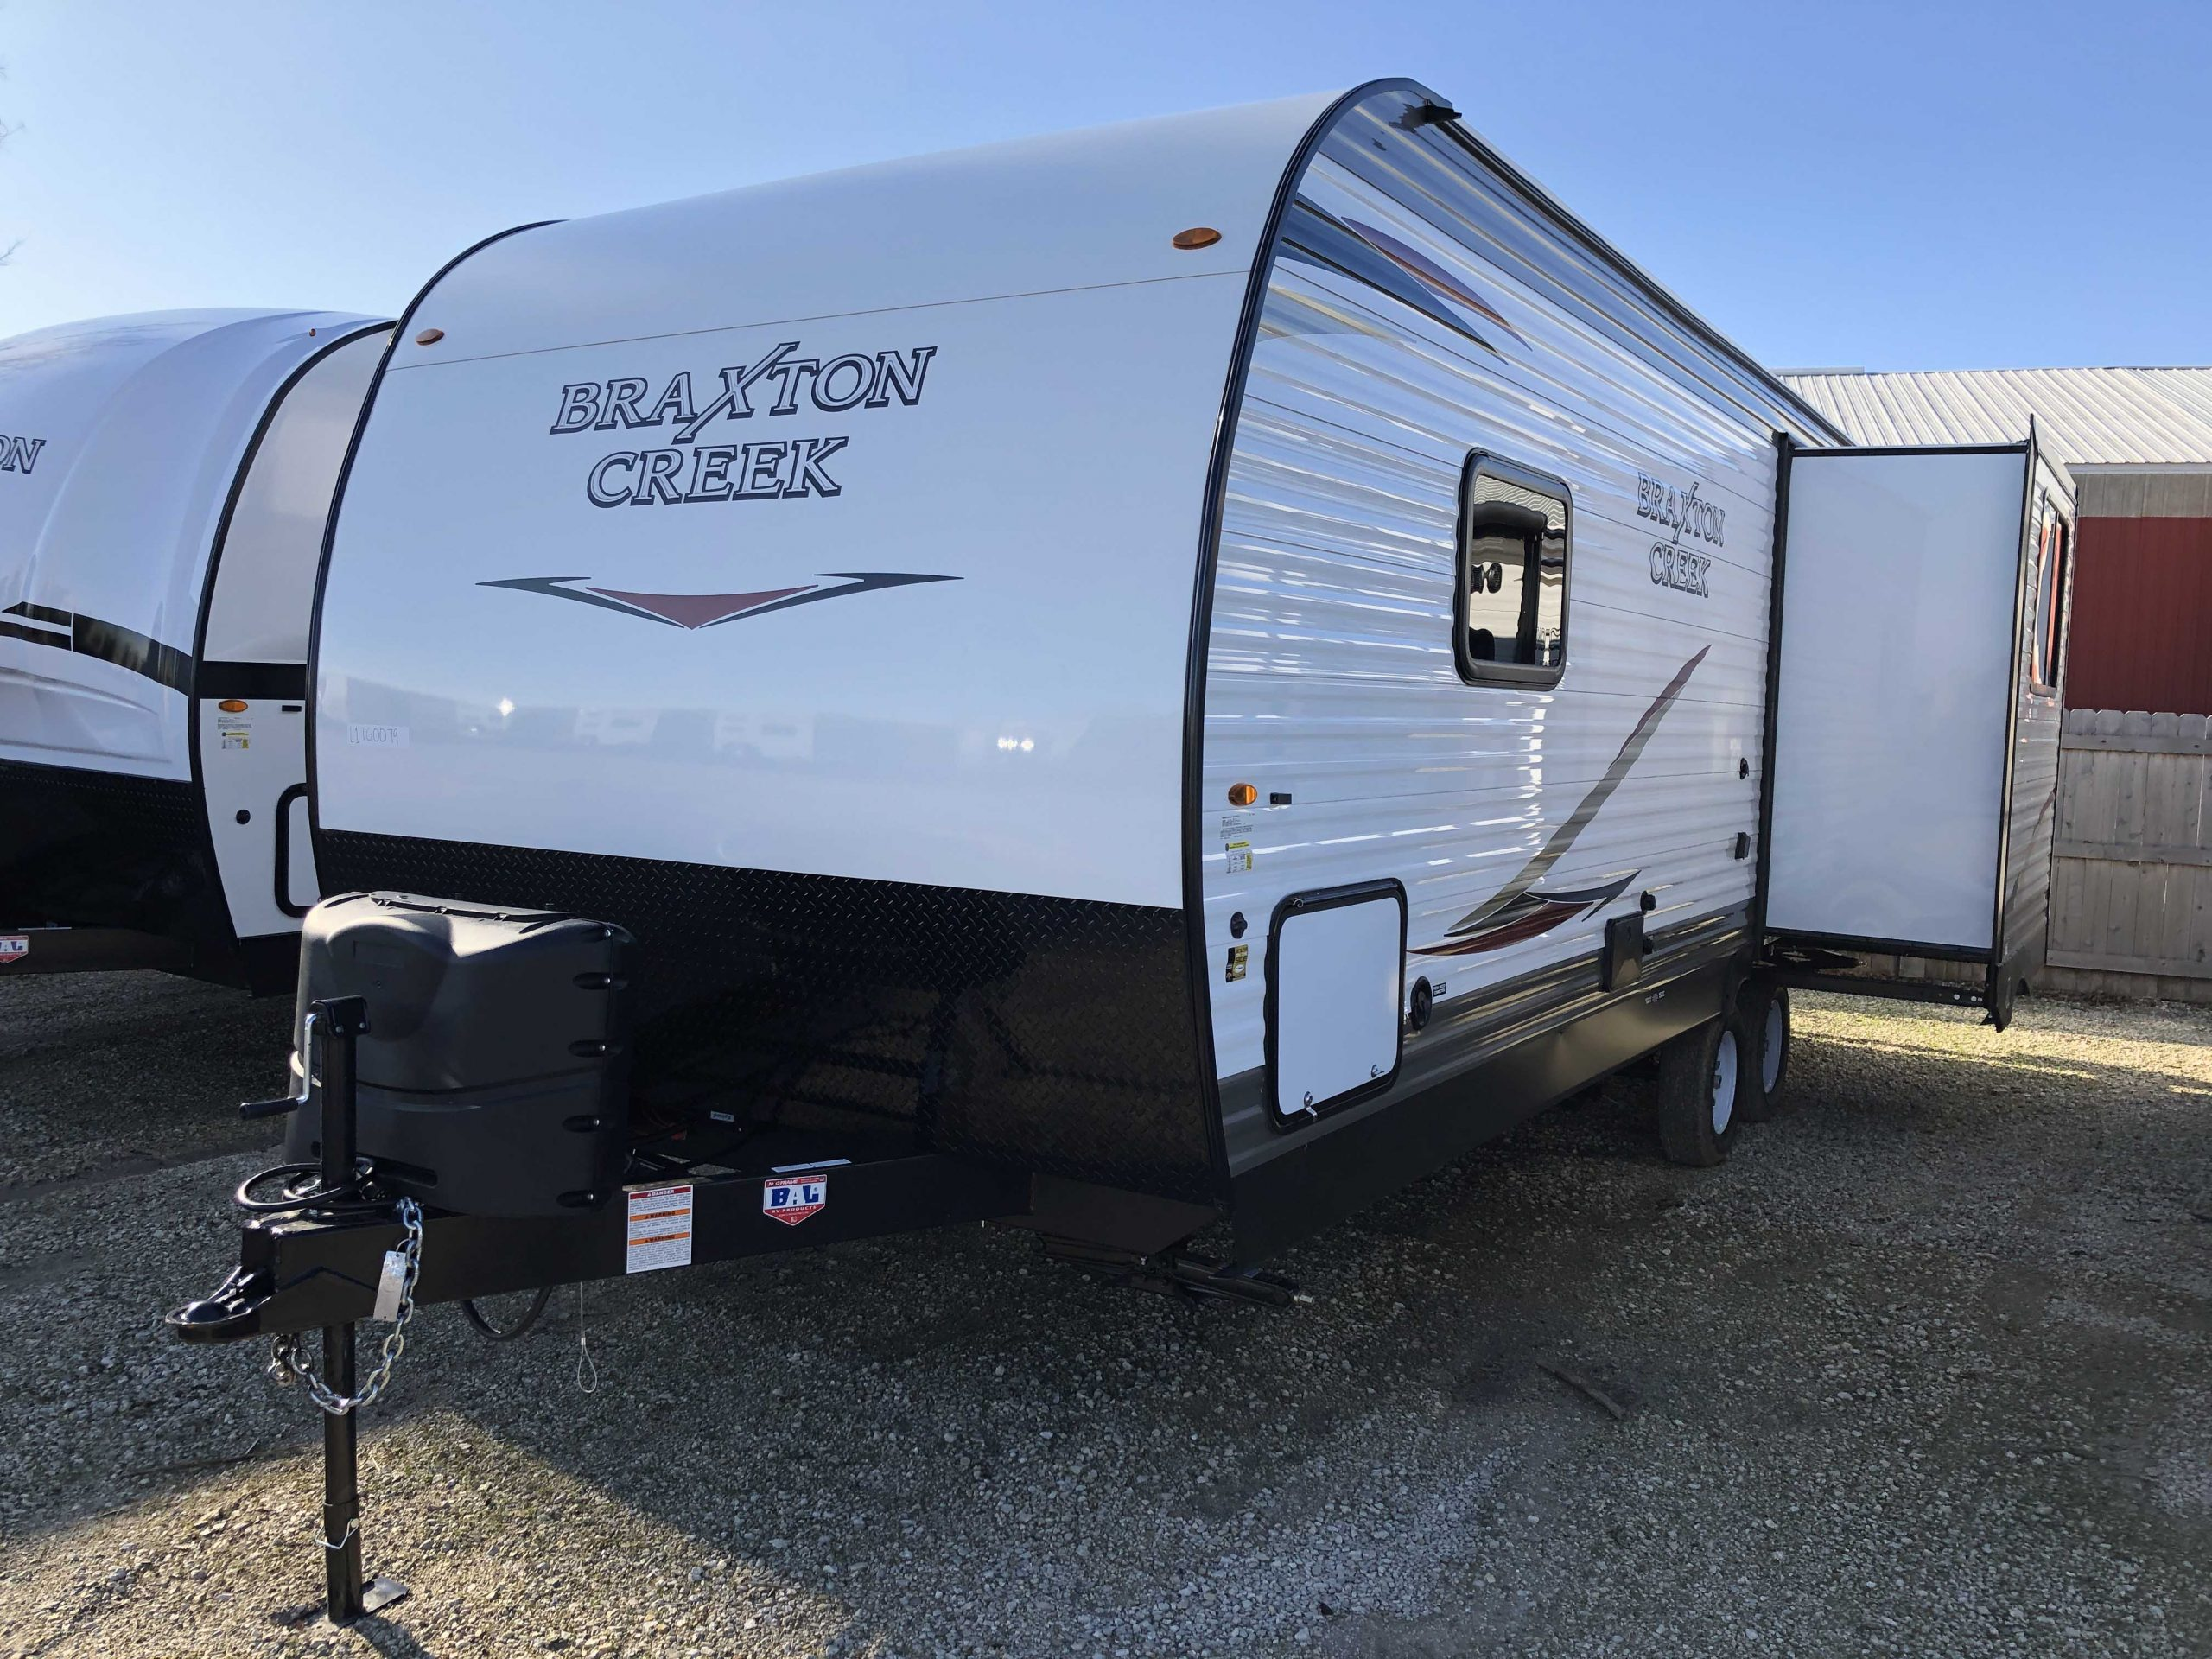 2020 Braxton Creek 25rls Bx 7g0079 Vacationland